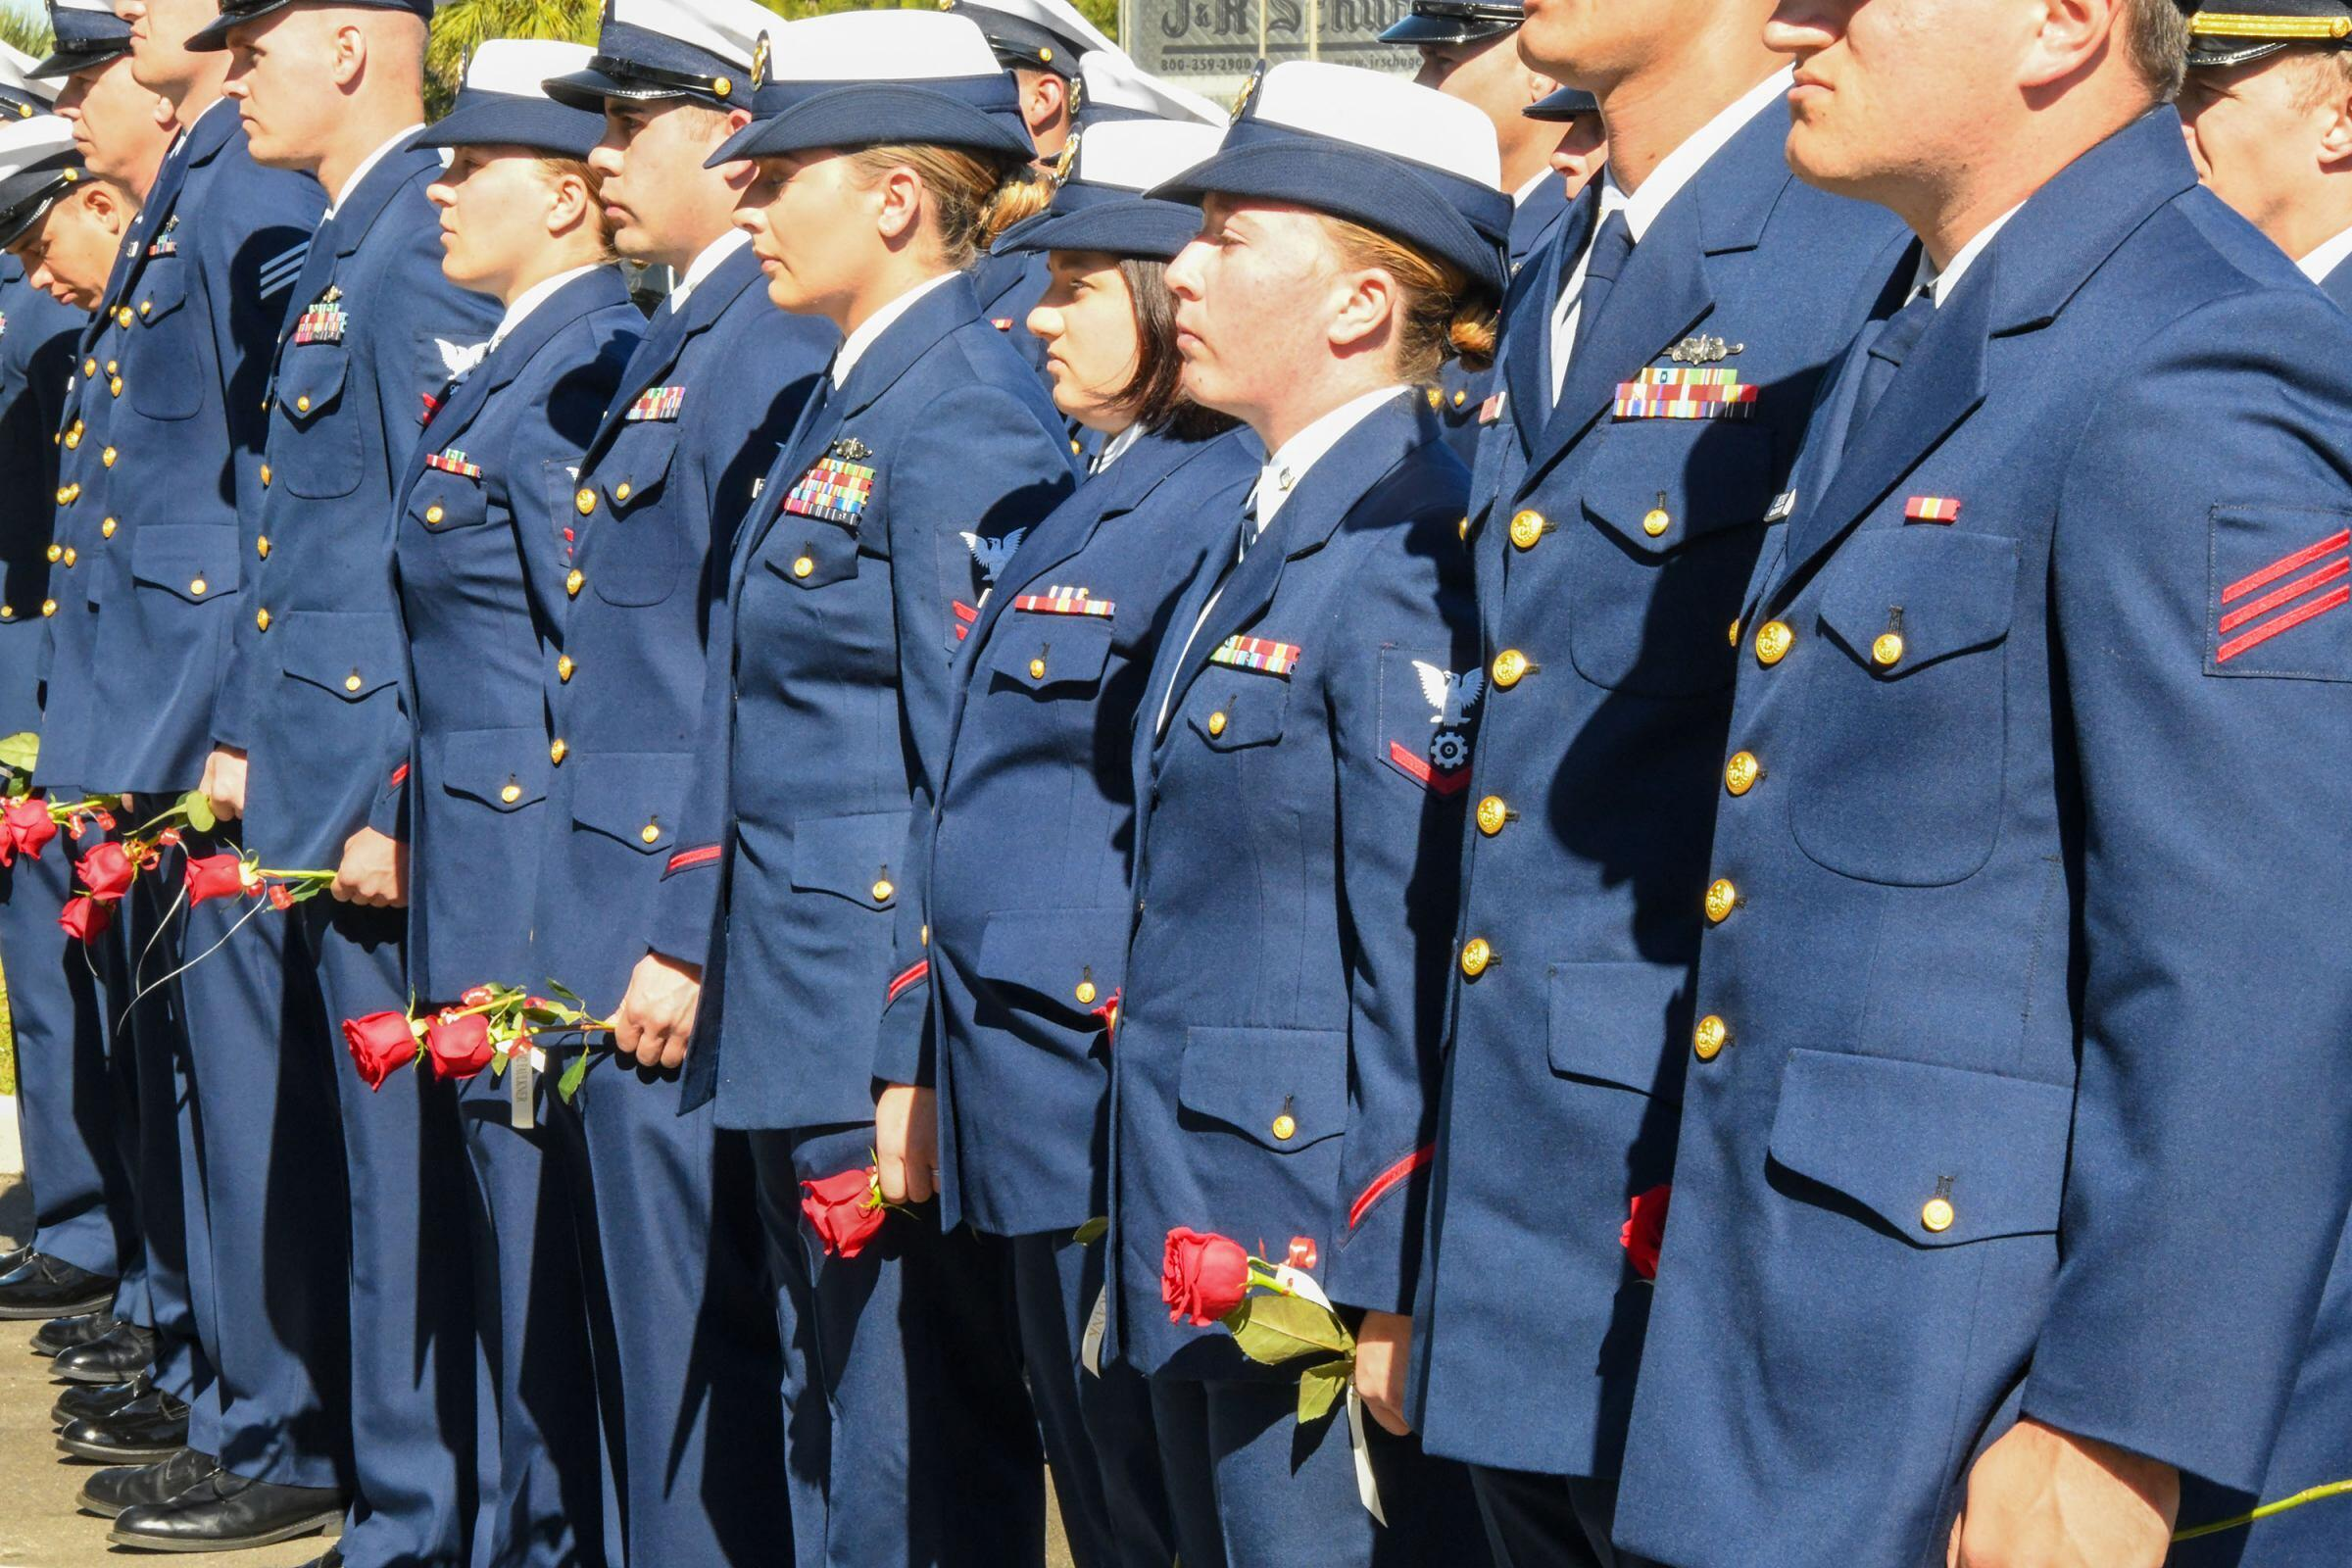 Members of the Coast Guard With Roses